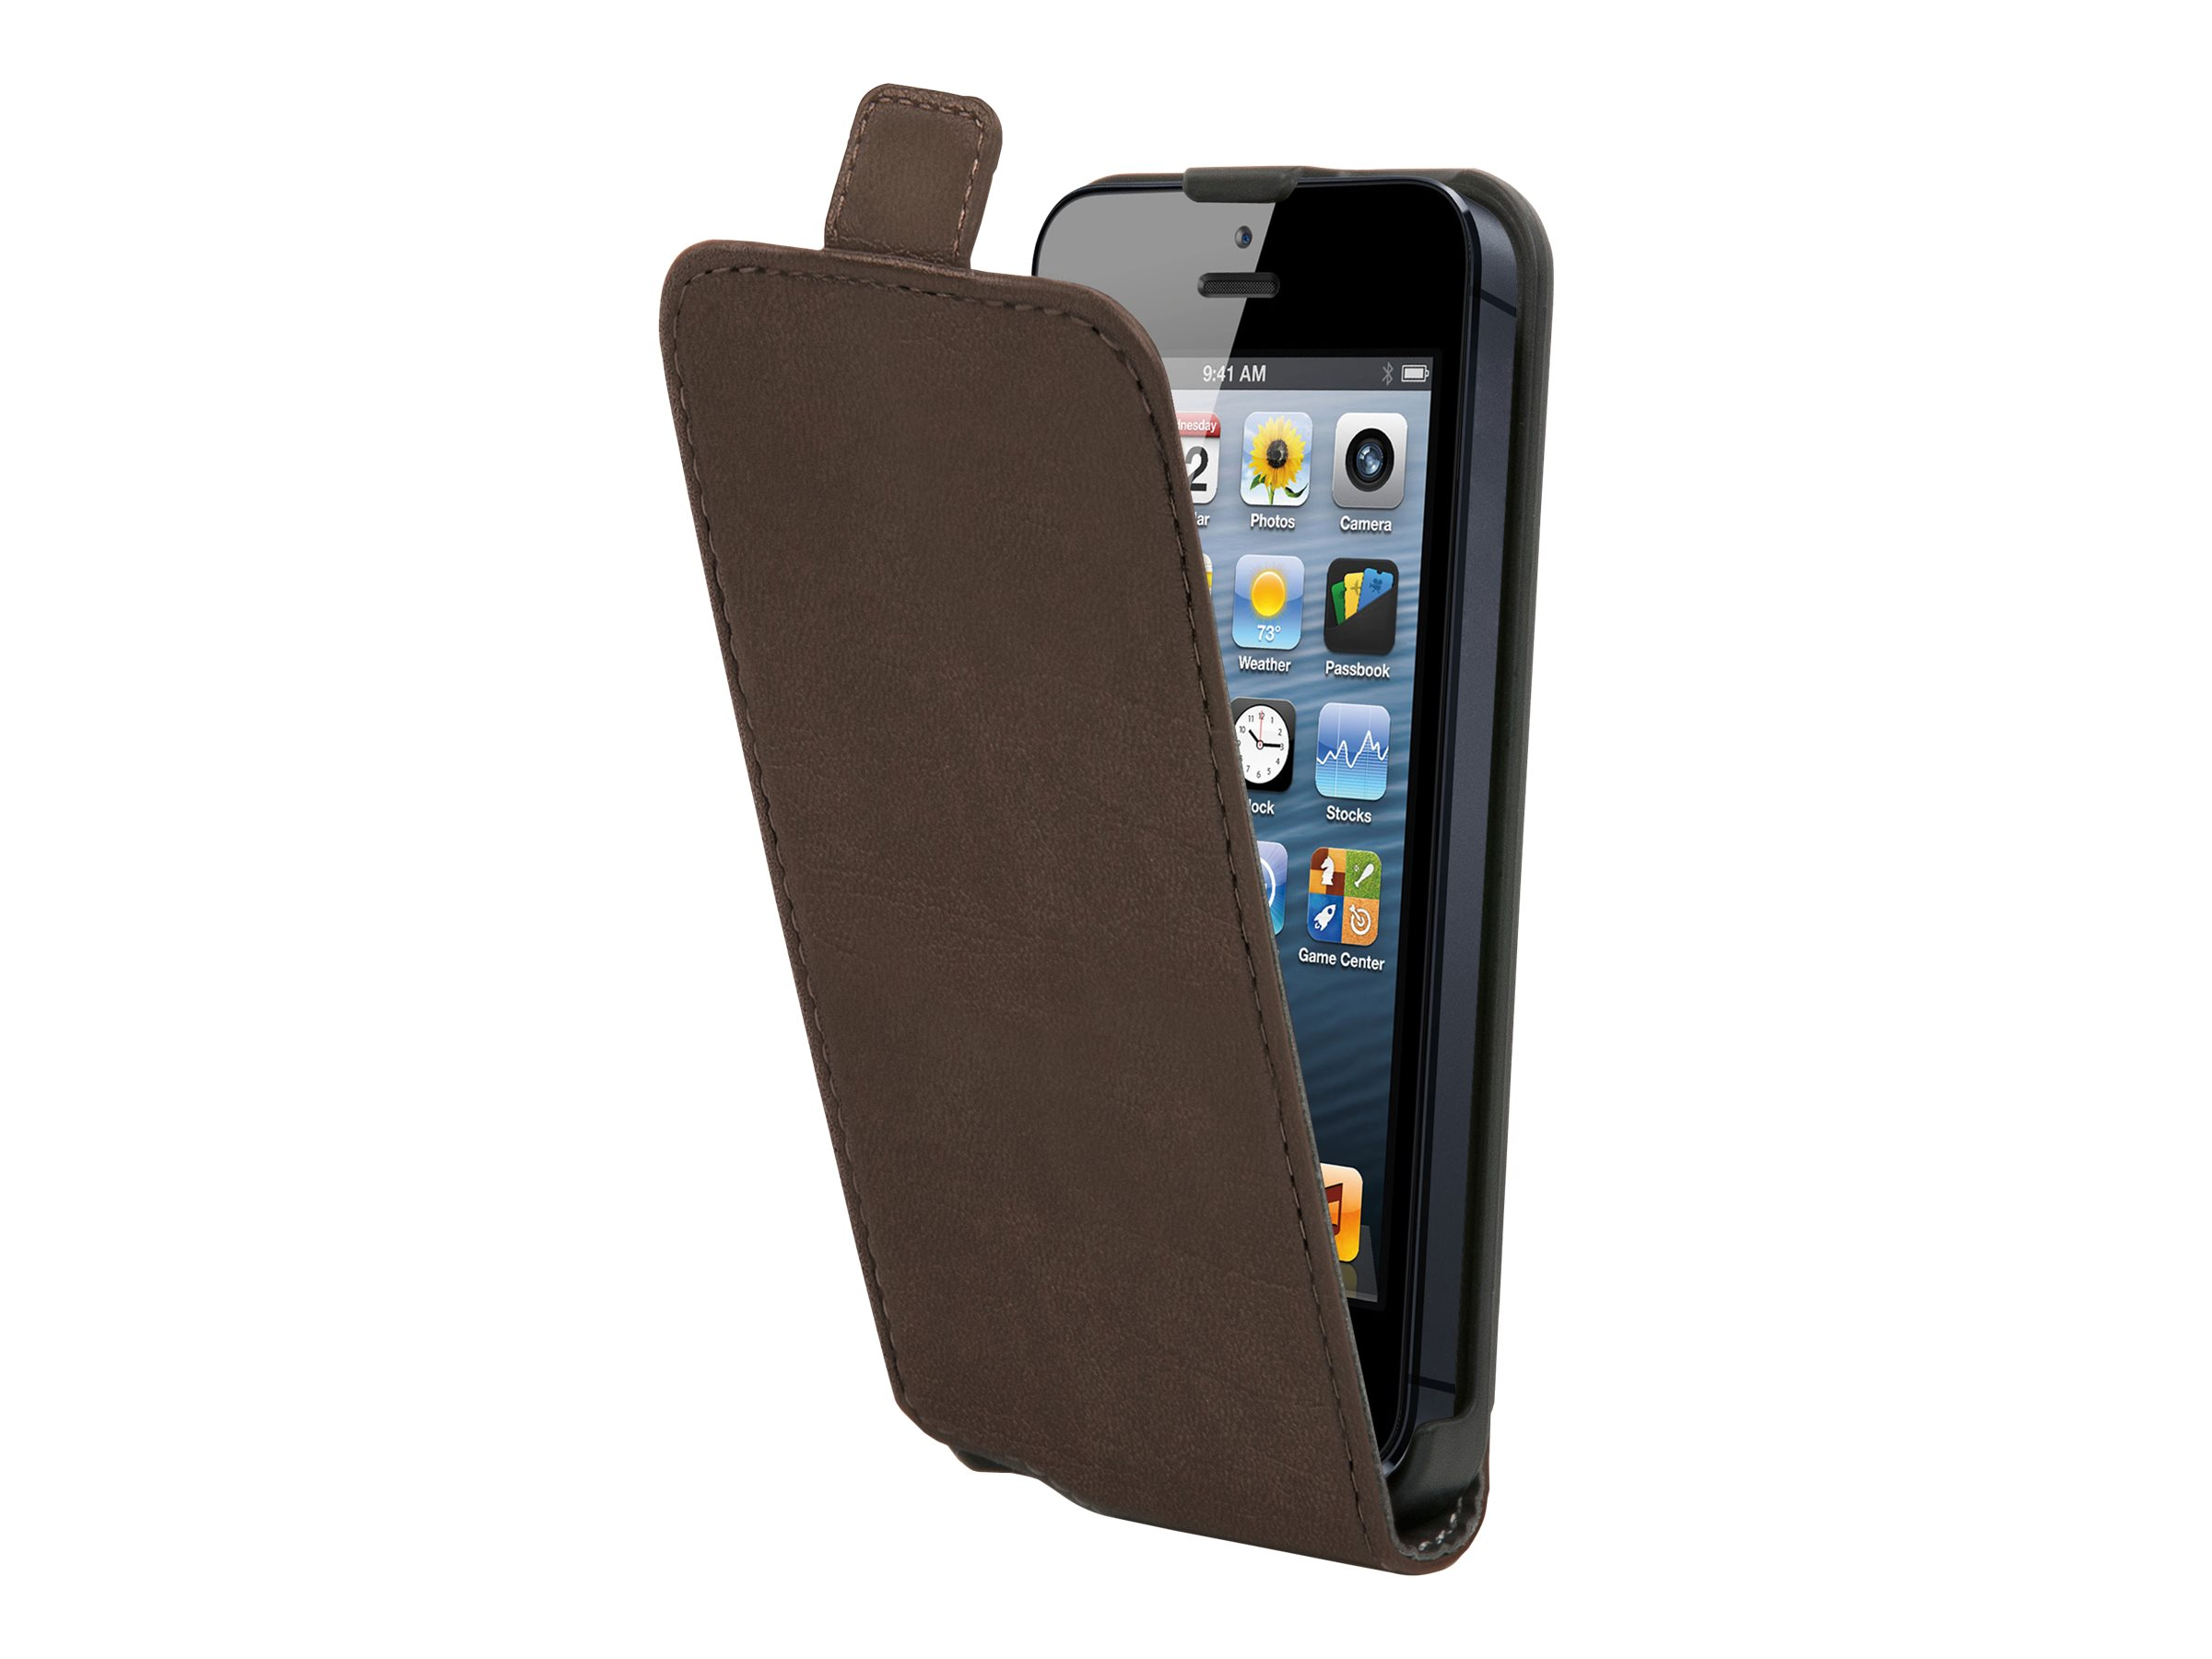 Muvit Made in Paris Slim - Protection à rabat pour iPhone 5, 5s - brun